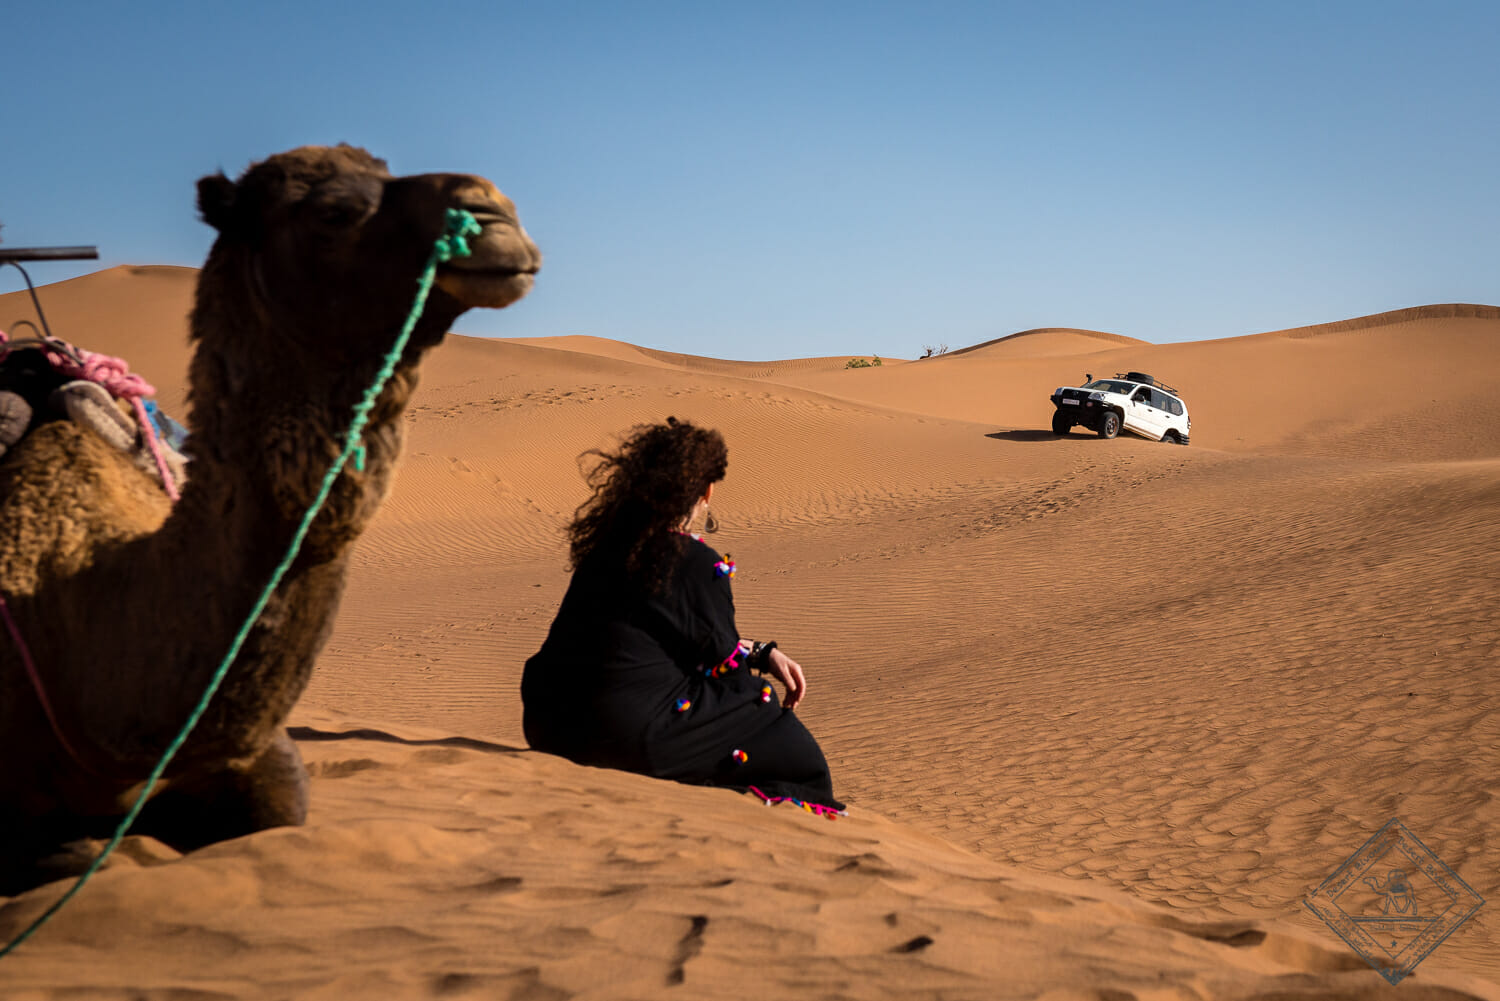 Desert Bivouac Camel Ride and 4x4 circuits